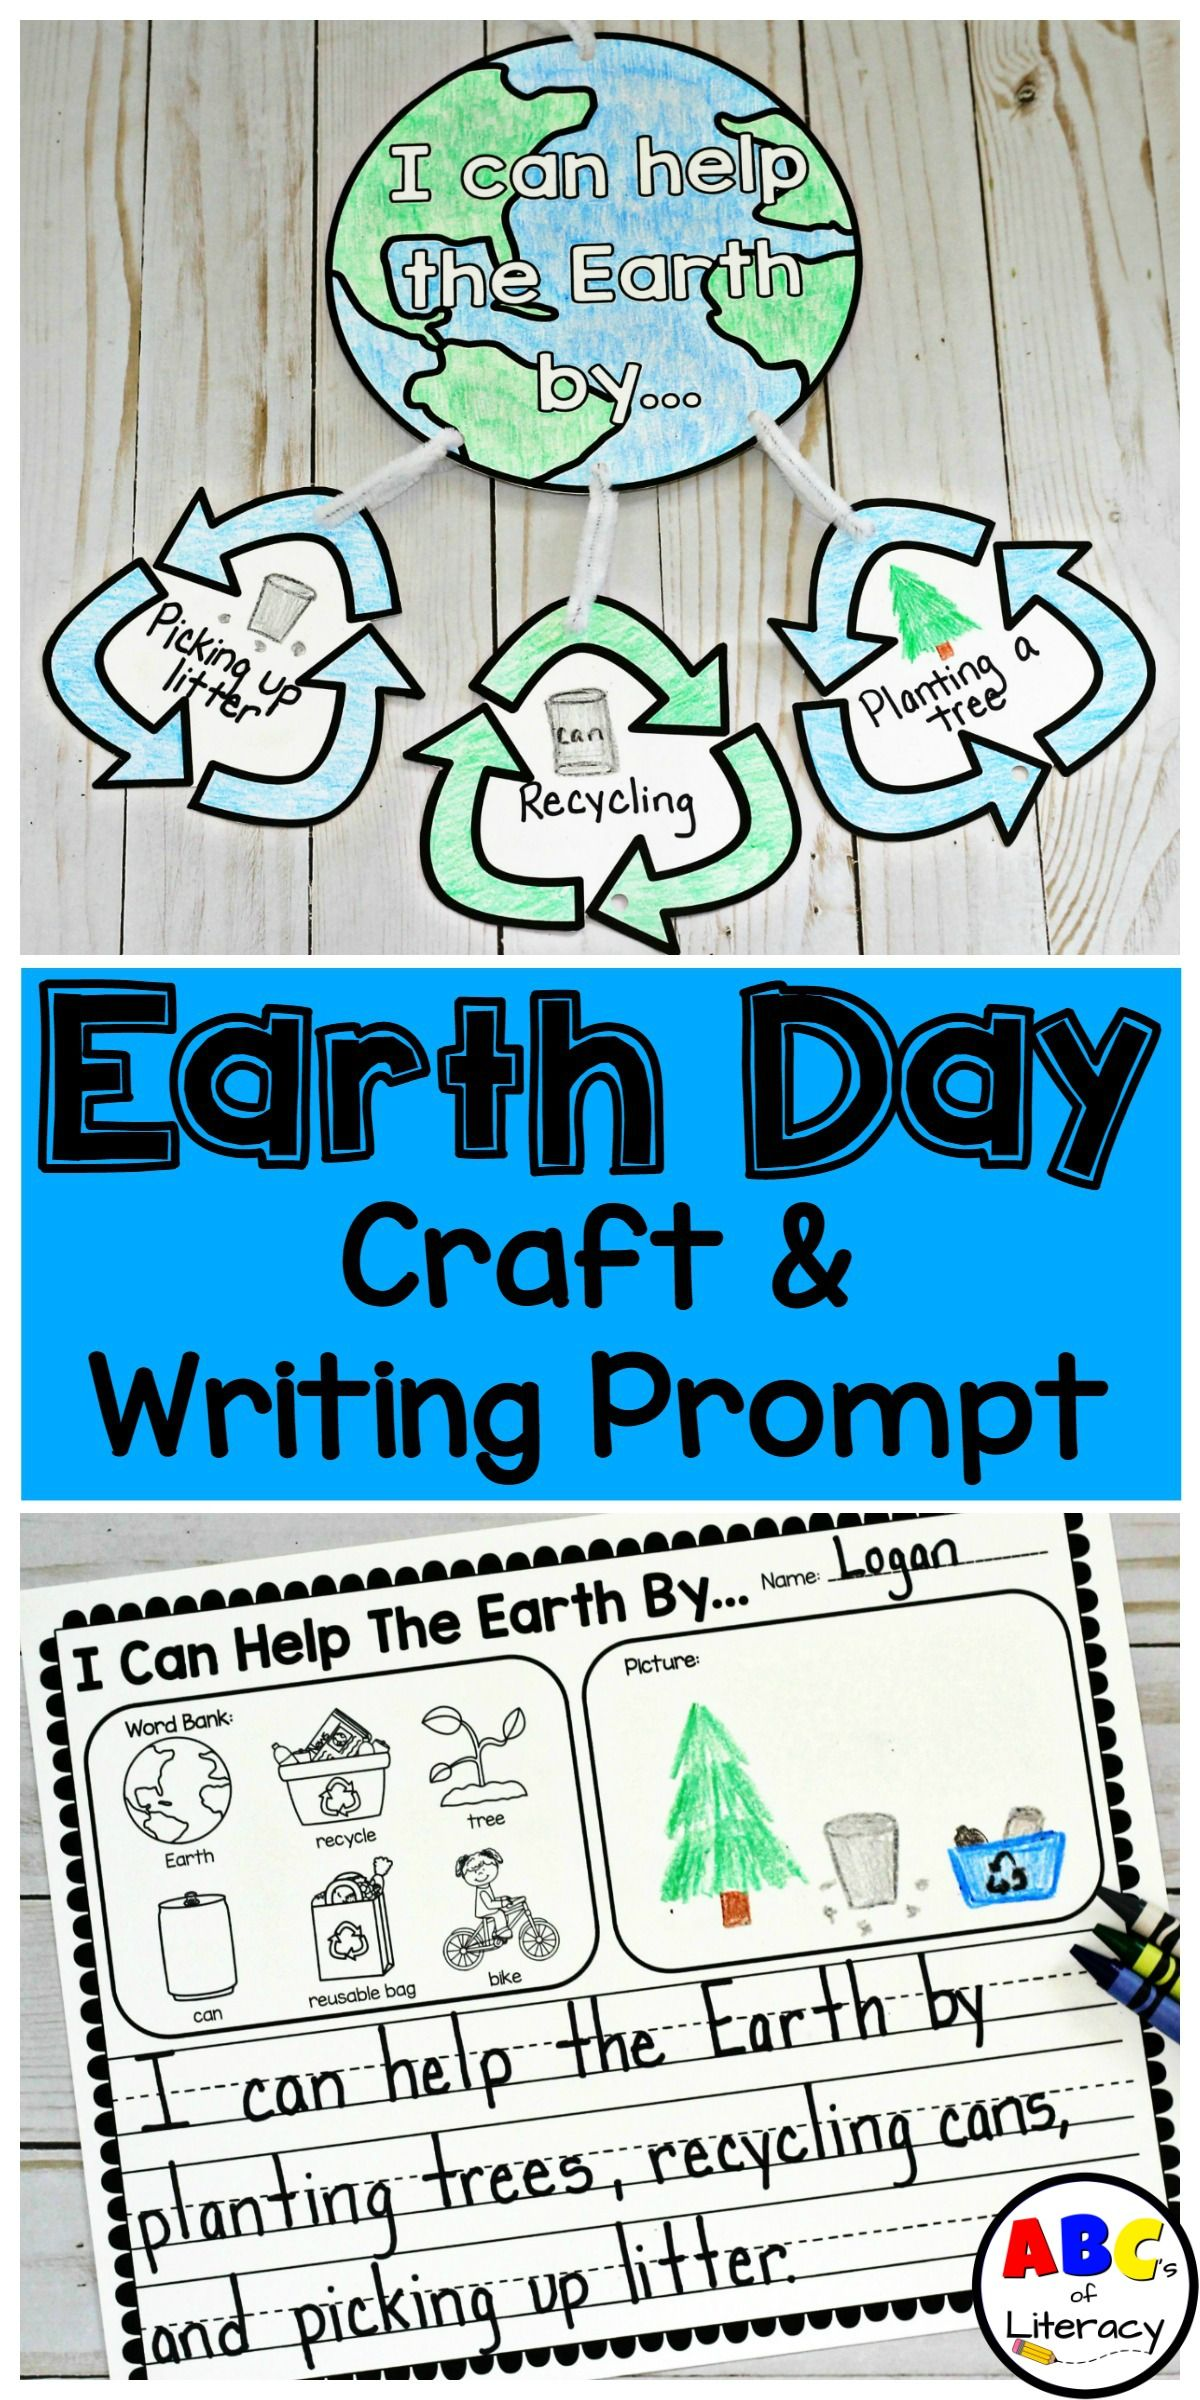 Earth Day Activities Earth Day Craft Writing Prompt